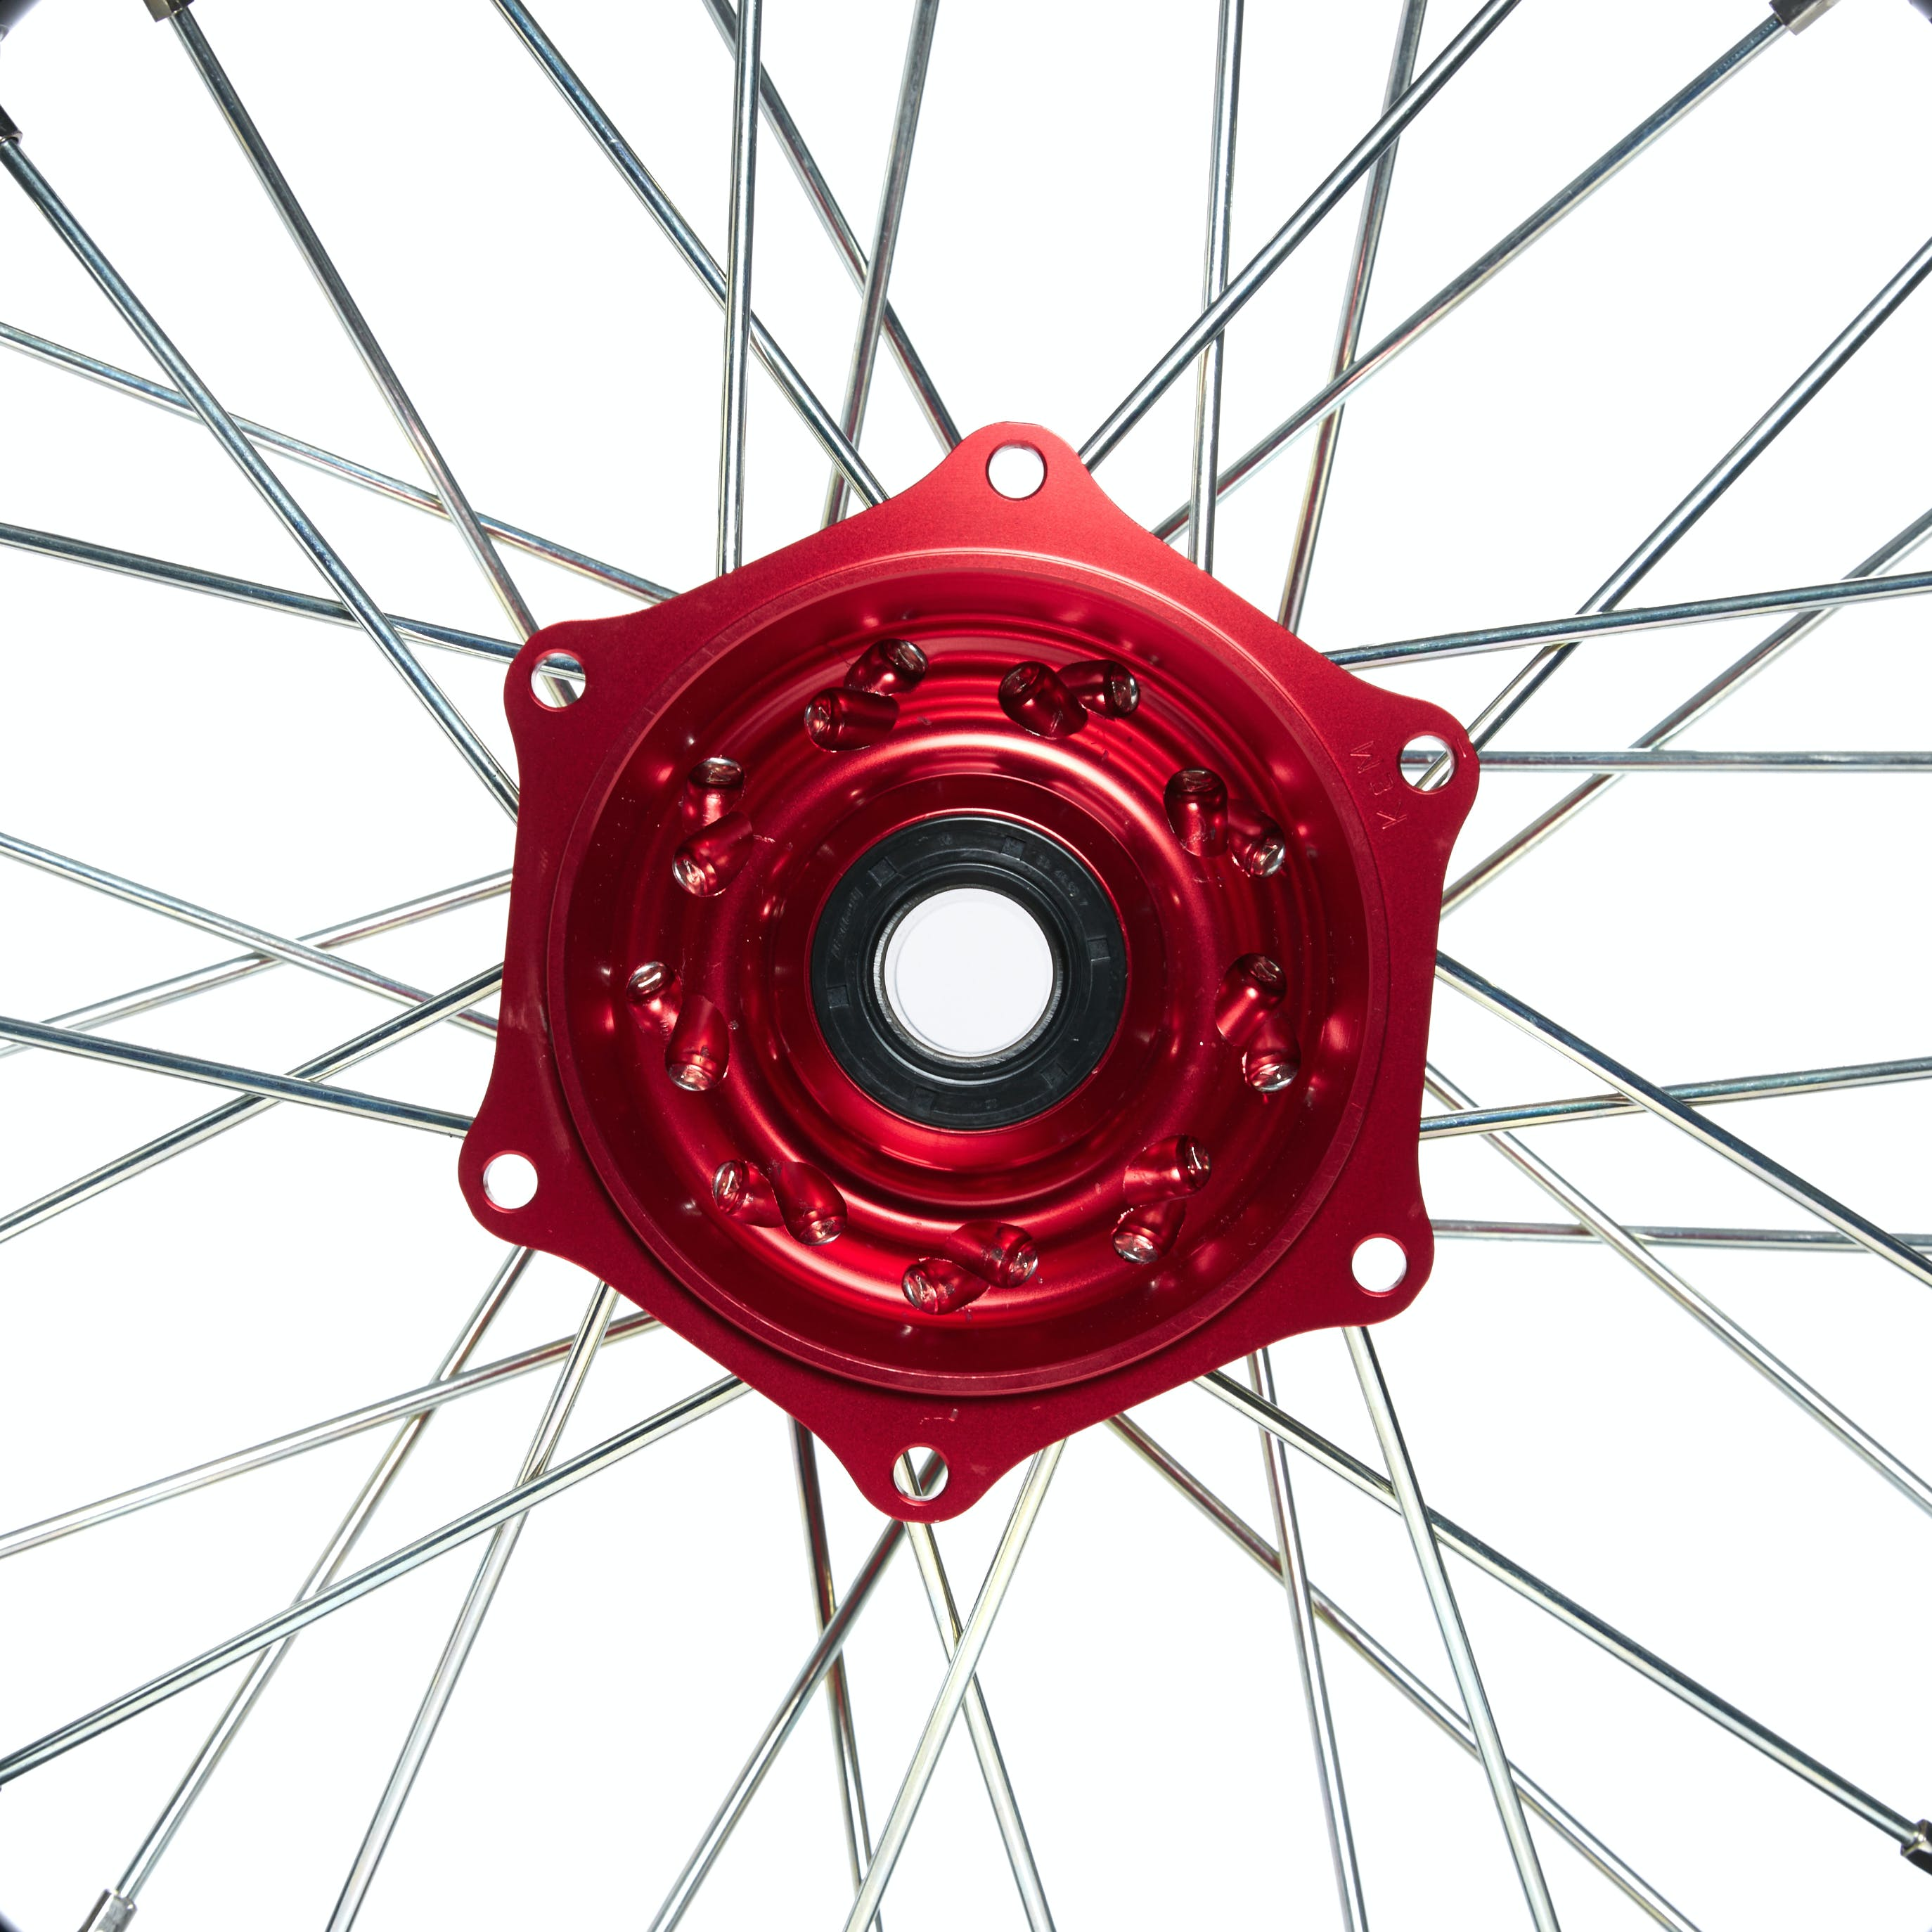 Beta 250//300 RR 13-18 400//450//498 RR 13-18 RFX Pro FAST Wheel Spacers Rear Red